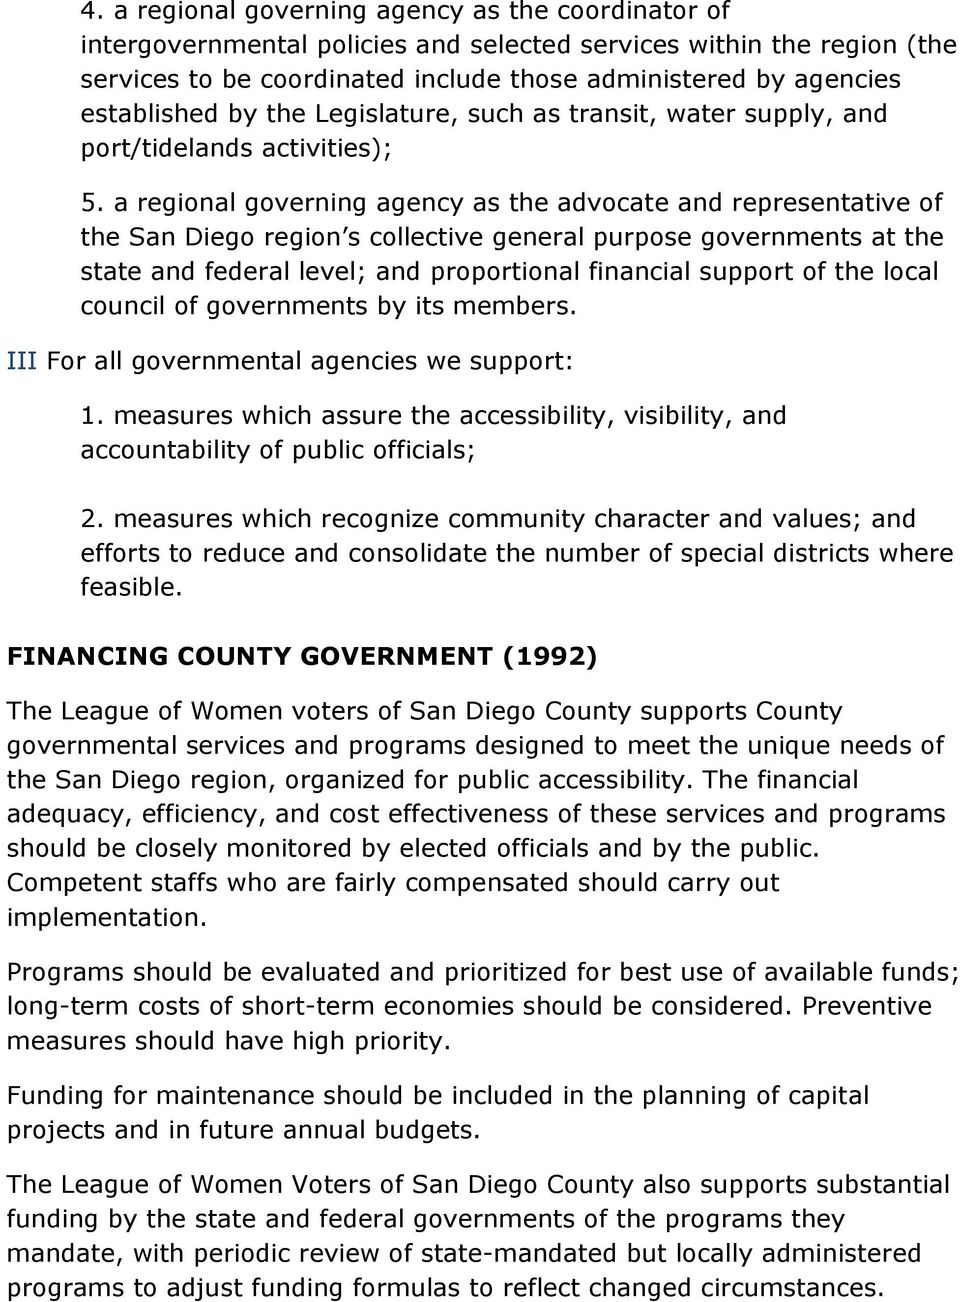 a regional governing agency as the advocate and representative of the San Diego region s collective general purpose governments at the state and federal level; and proportional financial support of